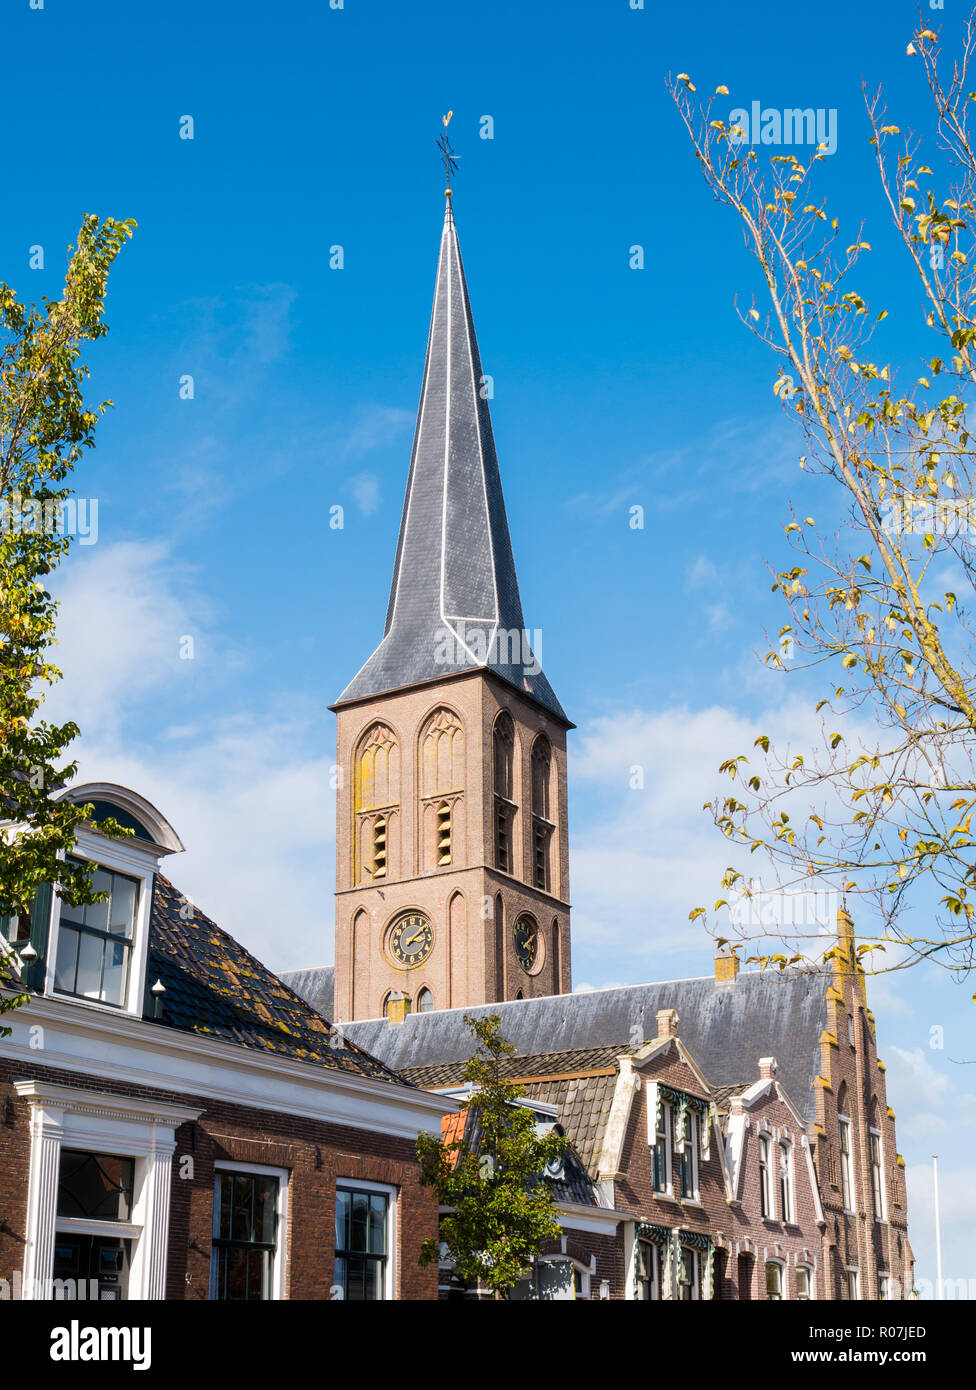 Tower of Saint Werenfridus Church and top facades of traditional houses in historic old town of Workum, Friesland, Netherlands Stock Photo